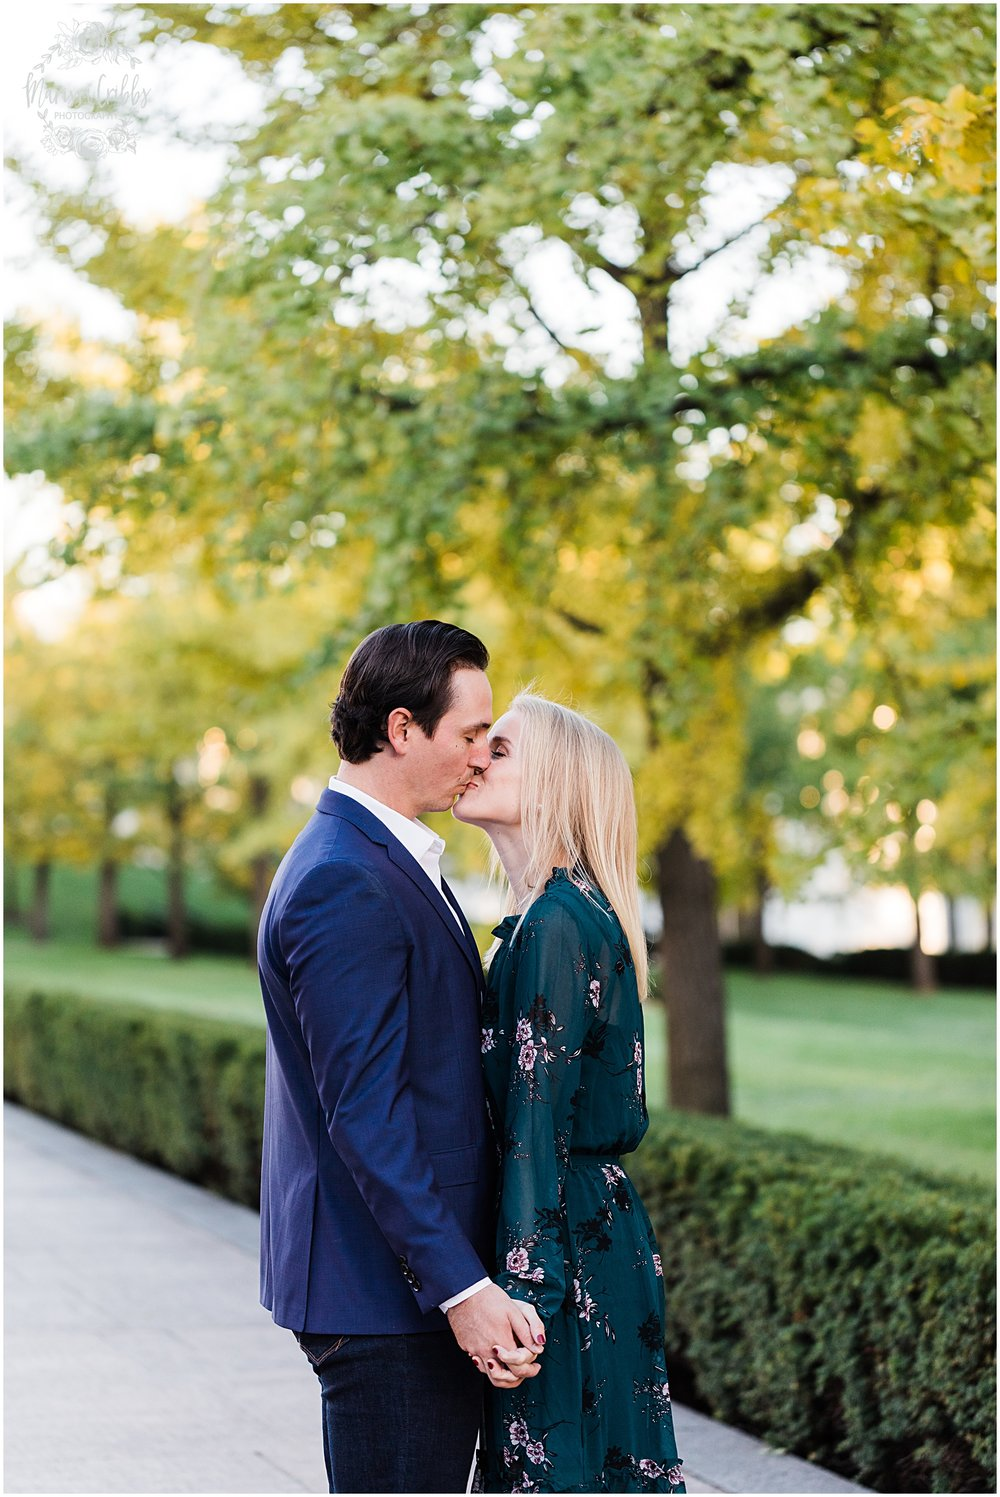 HALEY & CHASE ENGAGED LOOSE PARK & NELSON ATKINS | FALL ENGAGEMENT PHOTOS | MARISSA CRIBBS PHOTOGRAPHY_6879.jpg